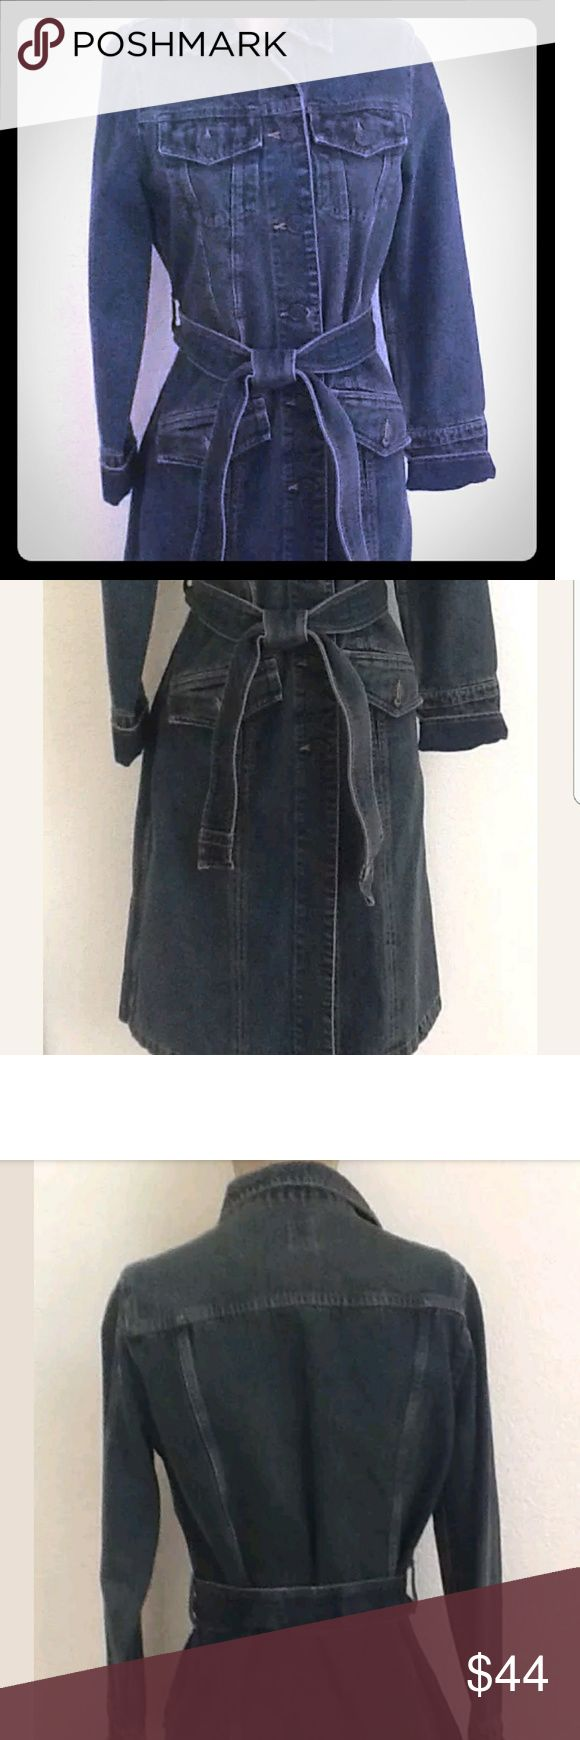 Gap denim dress coat This awesome denim trench is practically new, without any wear and tear! Bought it on a whim bc its beautiful!!! But i live in South Texas and havent gotten any use out of it! Perfect for upcoming fall weather!! GAP Jackets & Coats Jean Jackets